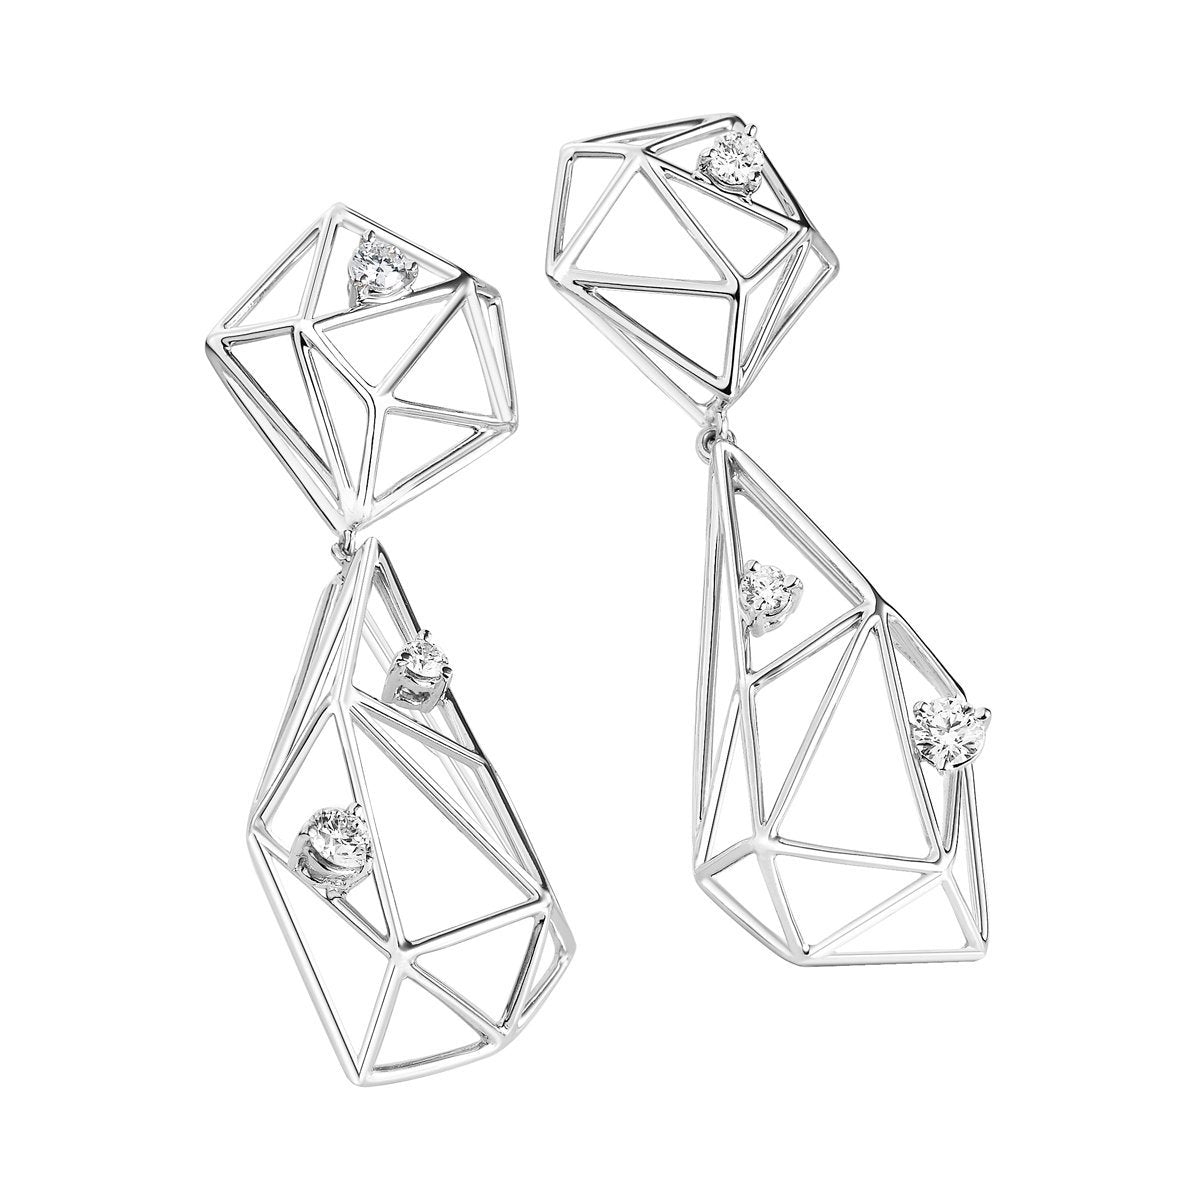 Ilona diamond earrings